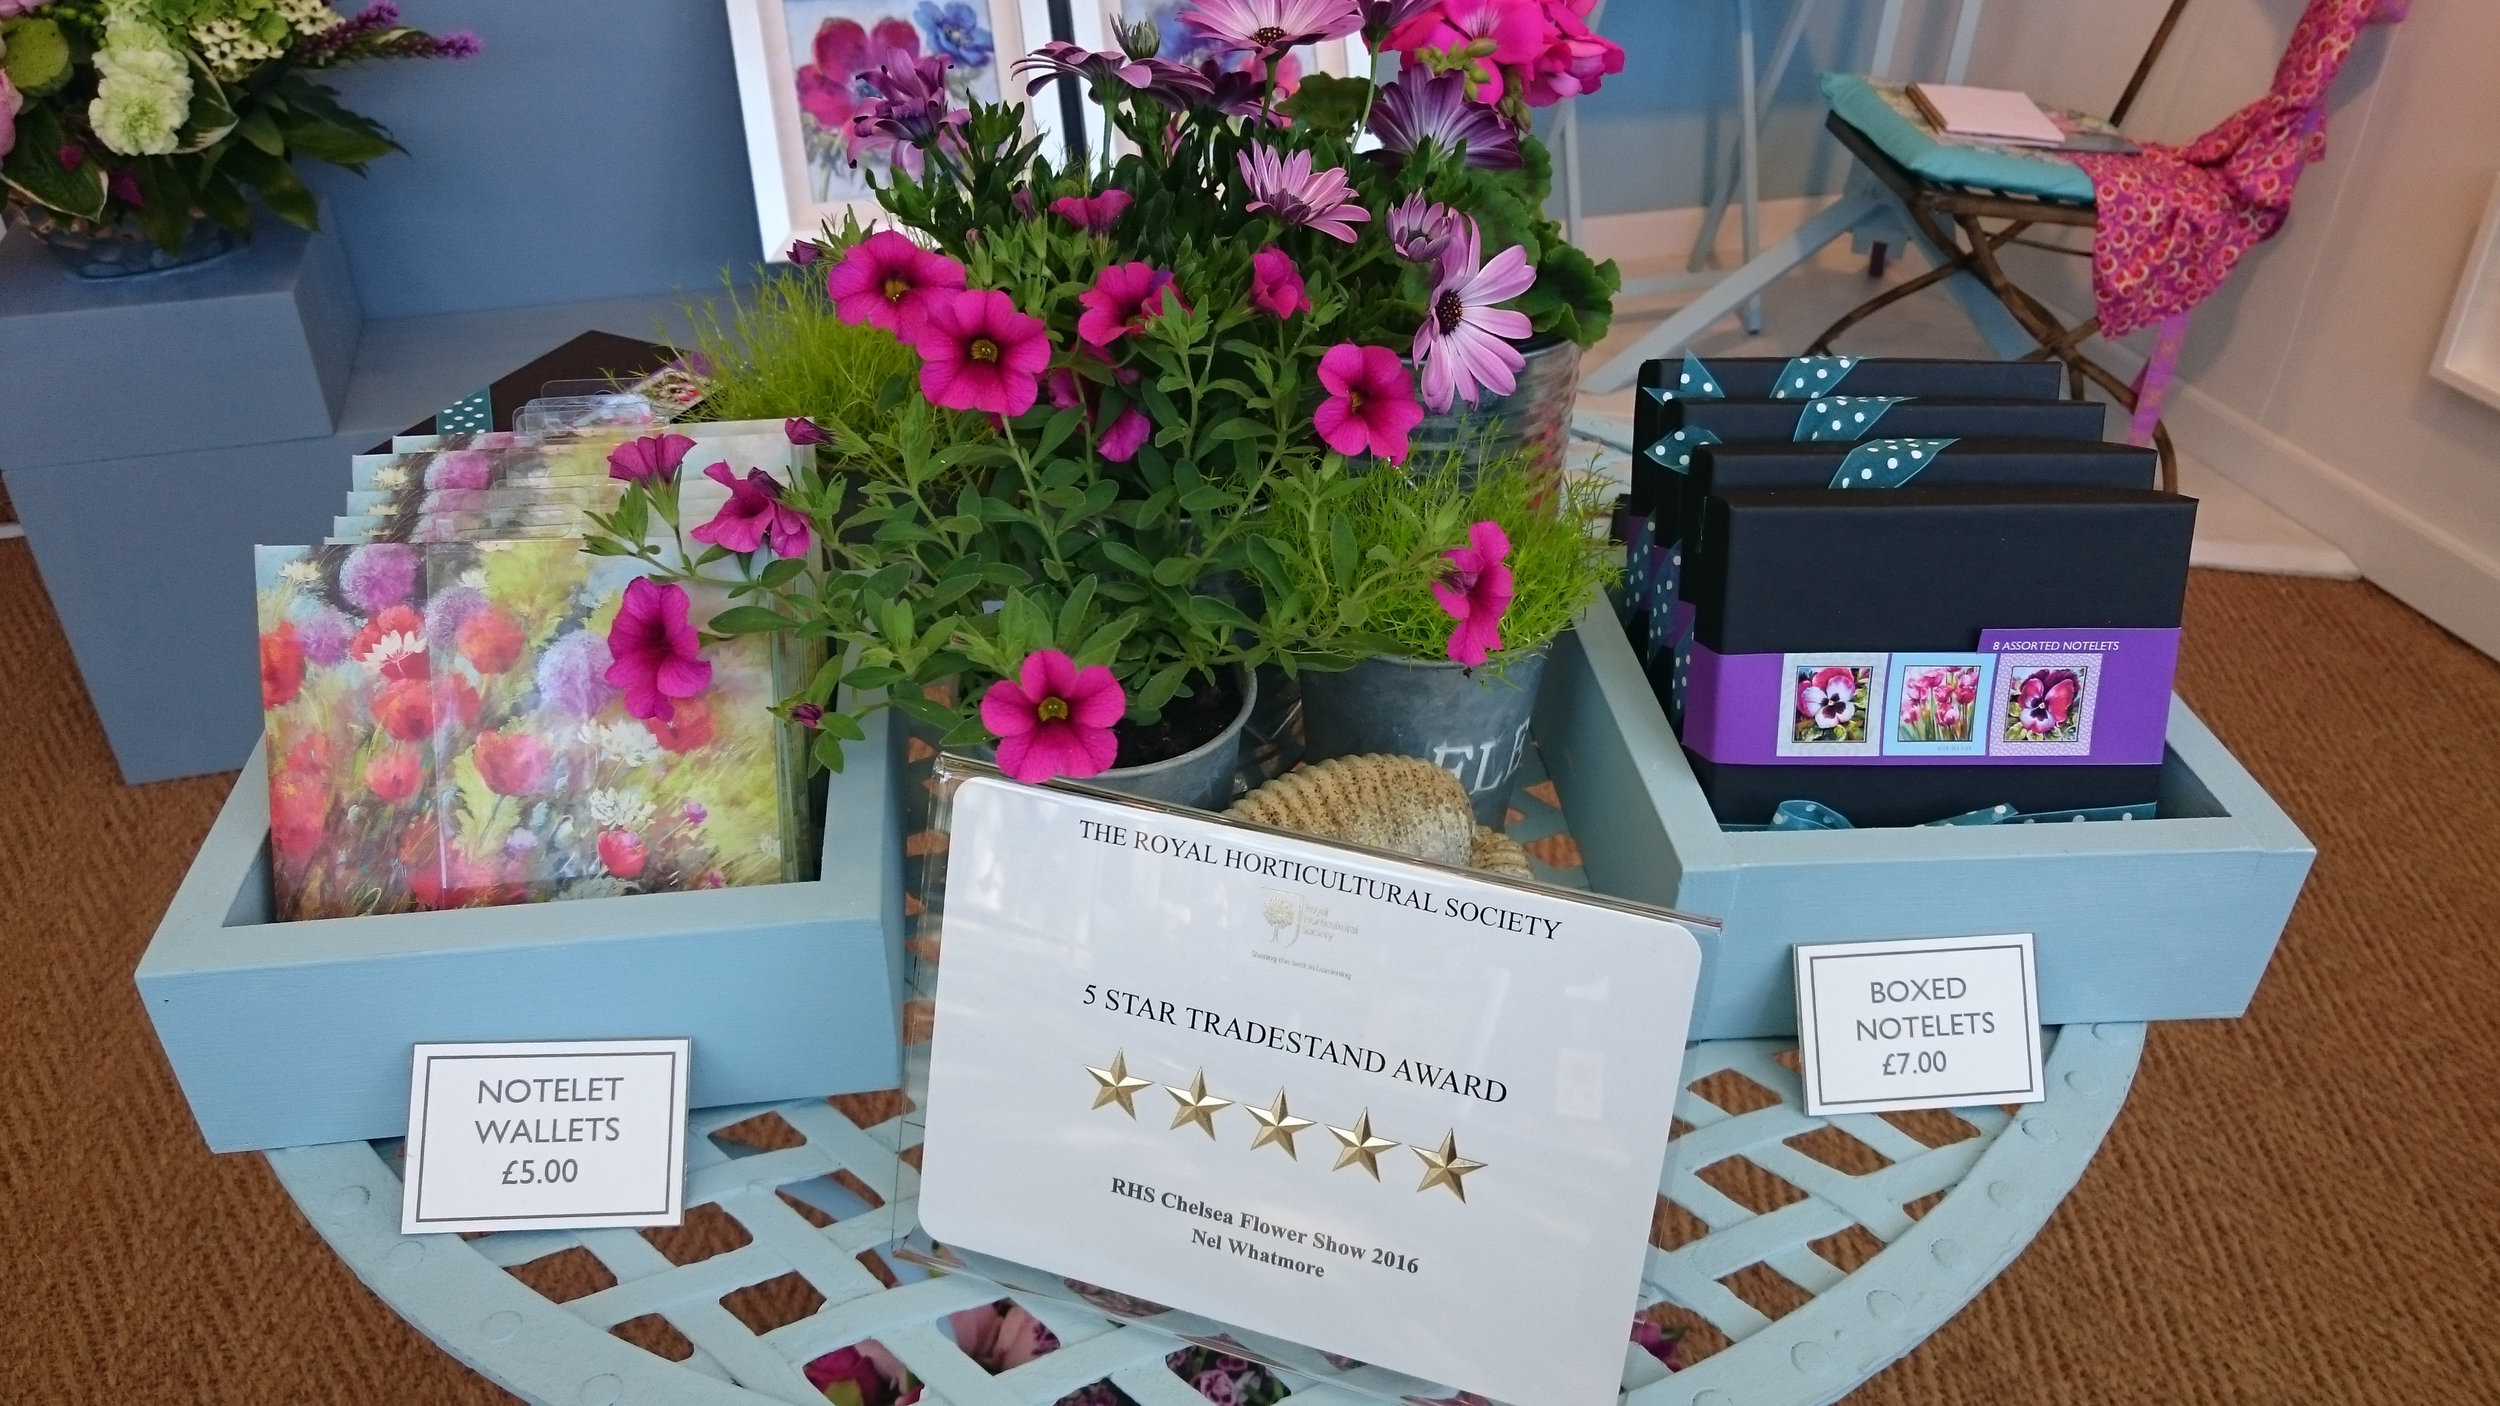 Five Star Award at Chelsea Flower Show